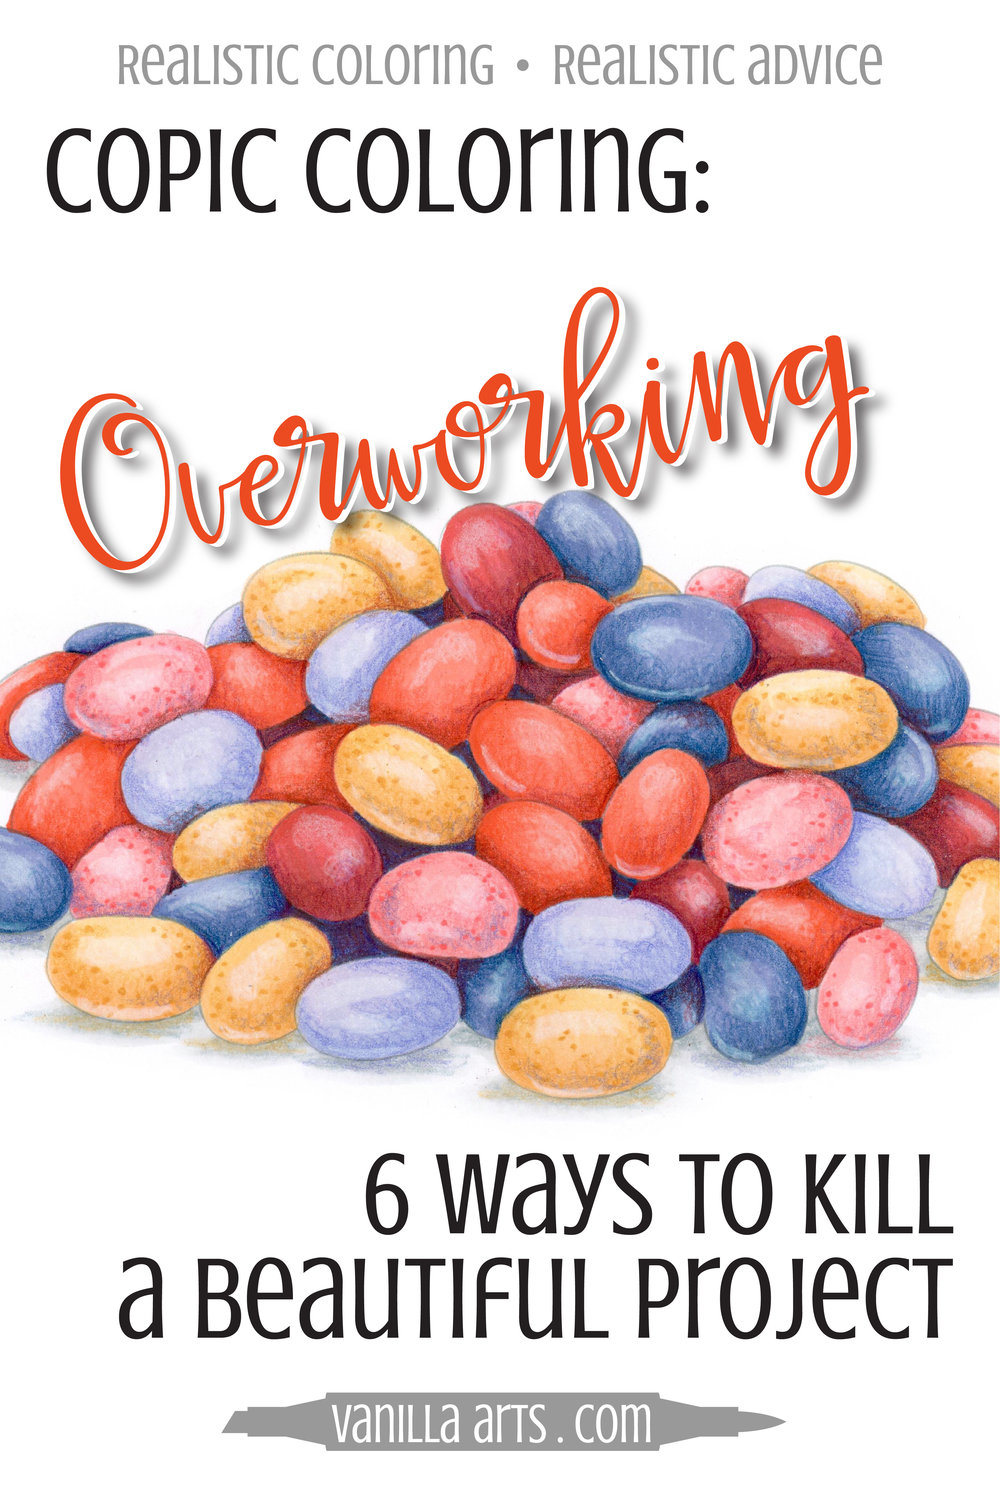 Copic Coloring: 6 Ways to Kill Your Coloring